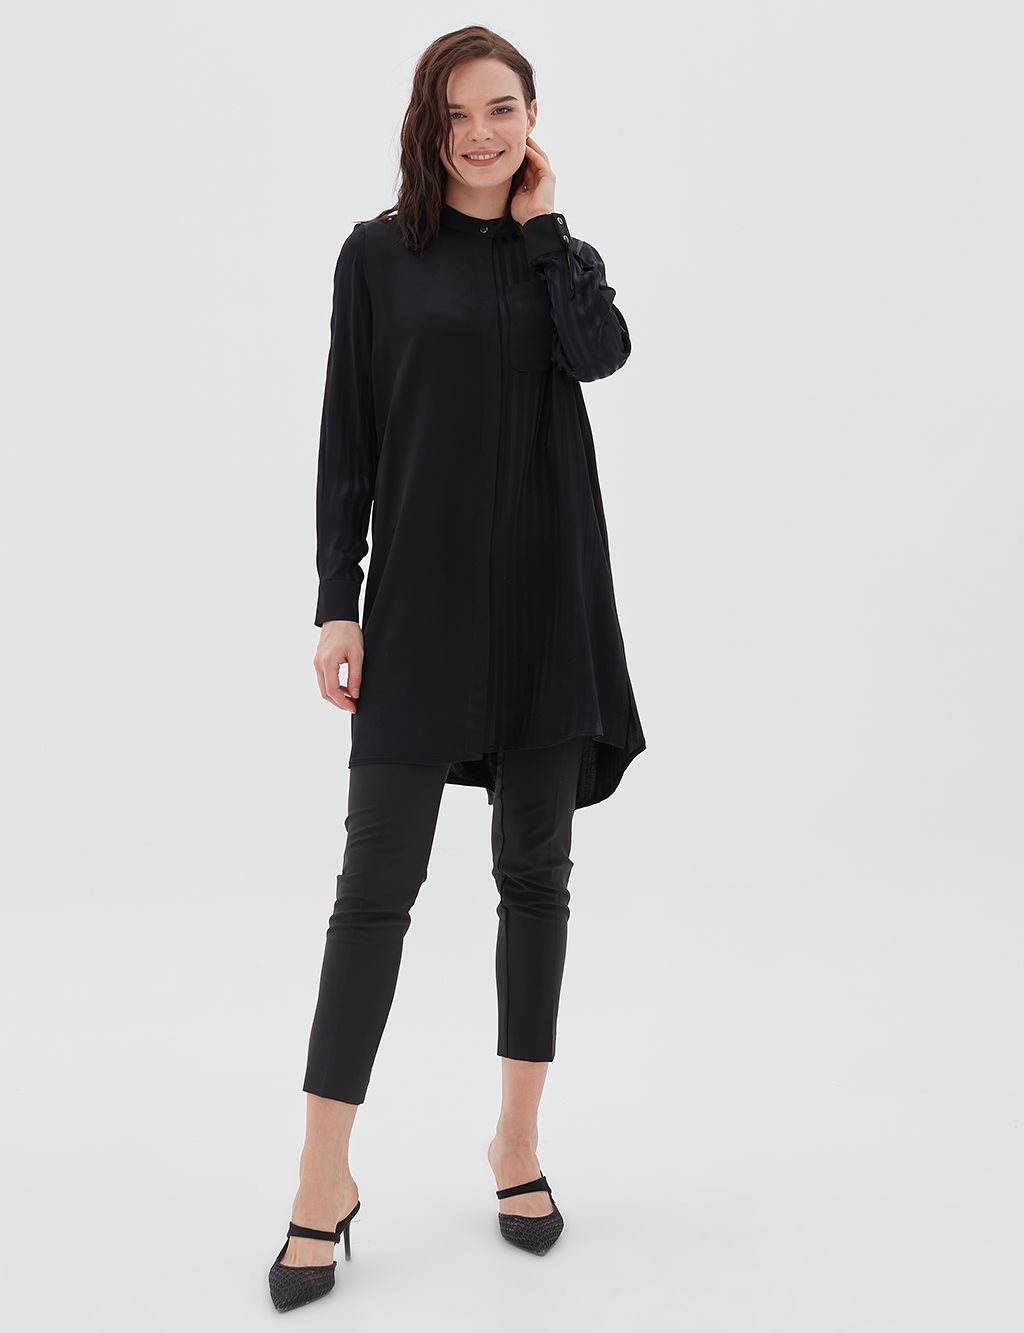 Striped Grandad Collar Tunic B20 21136 Black